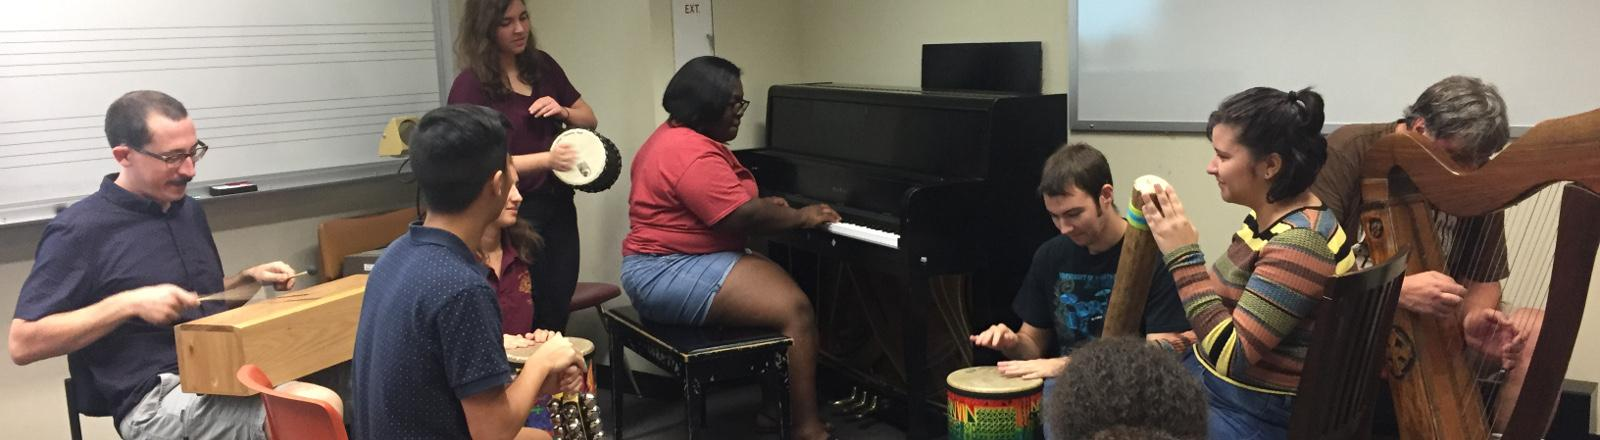 Loyola School of Music Music Therapy Majors practice percussion during improvisation class.